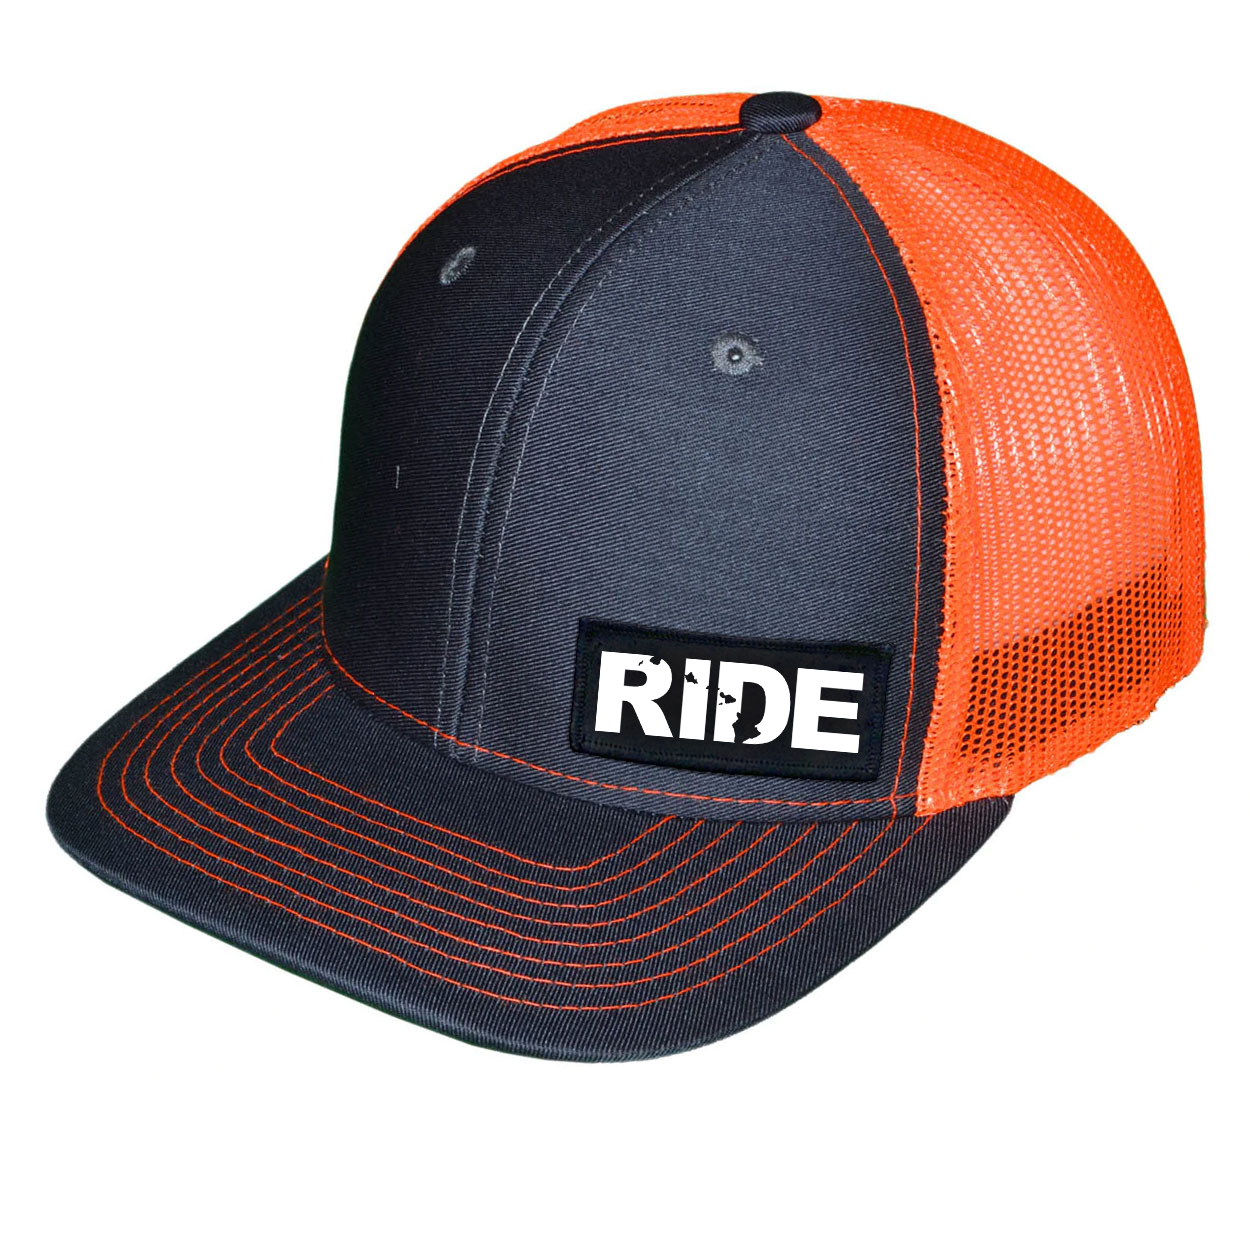 Ride Hawaii Night Out Woven Patch Snapback Trucker Hat Dark Gray/Orange (White Logo)